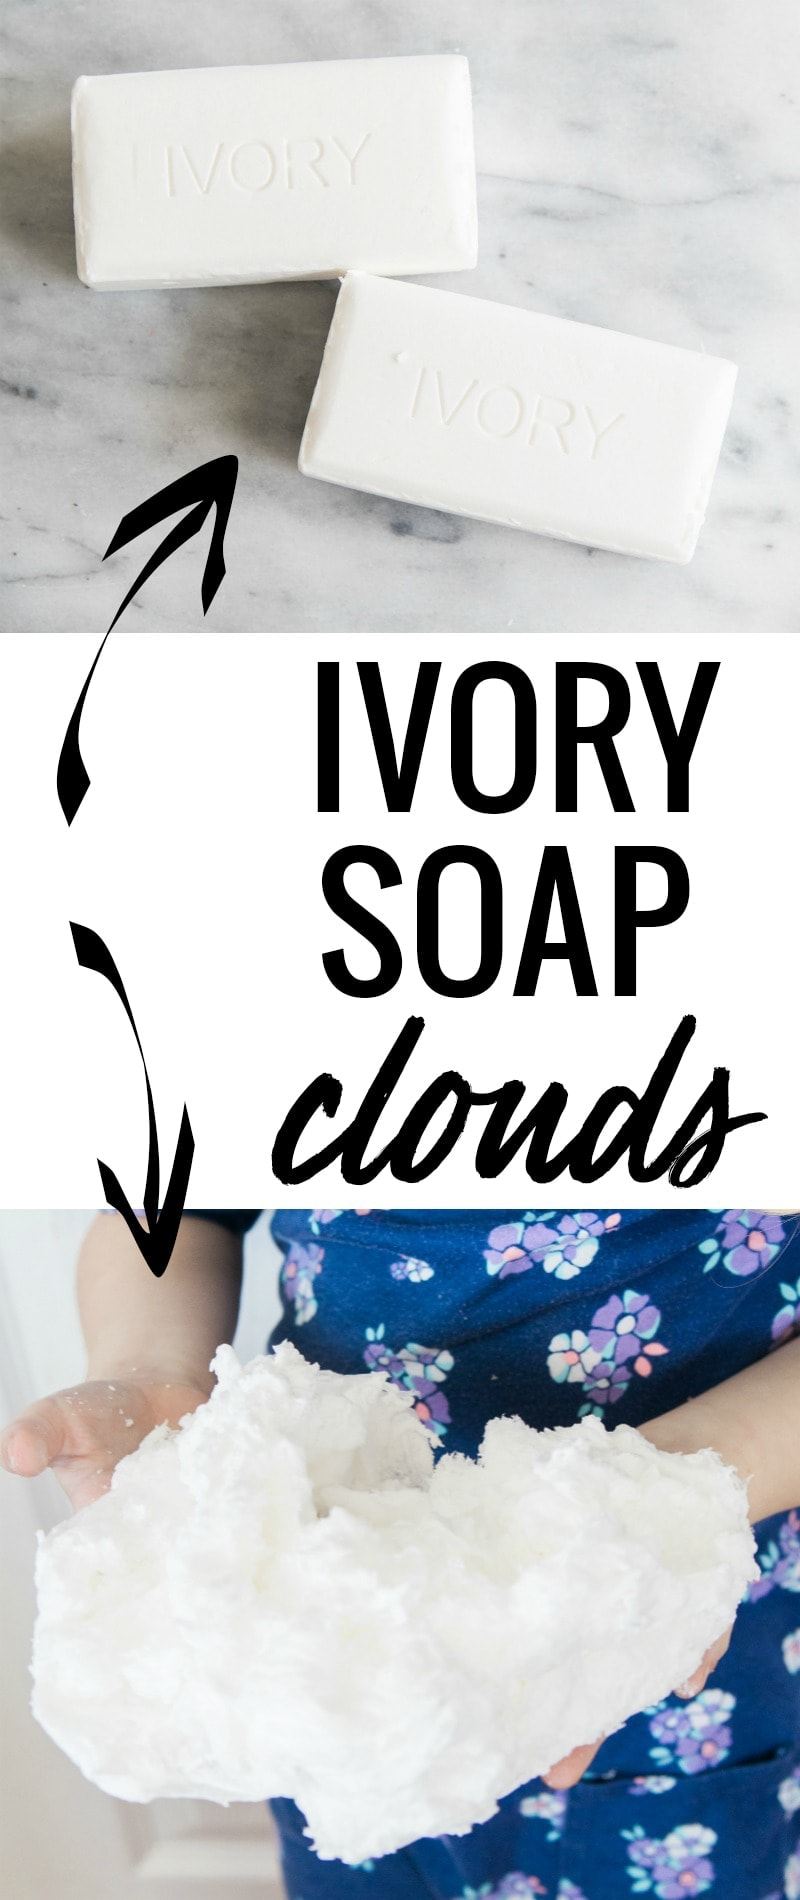 This ivory soap clouds experiment only takes two minutes to do, and is so easy!